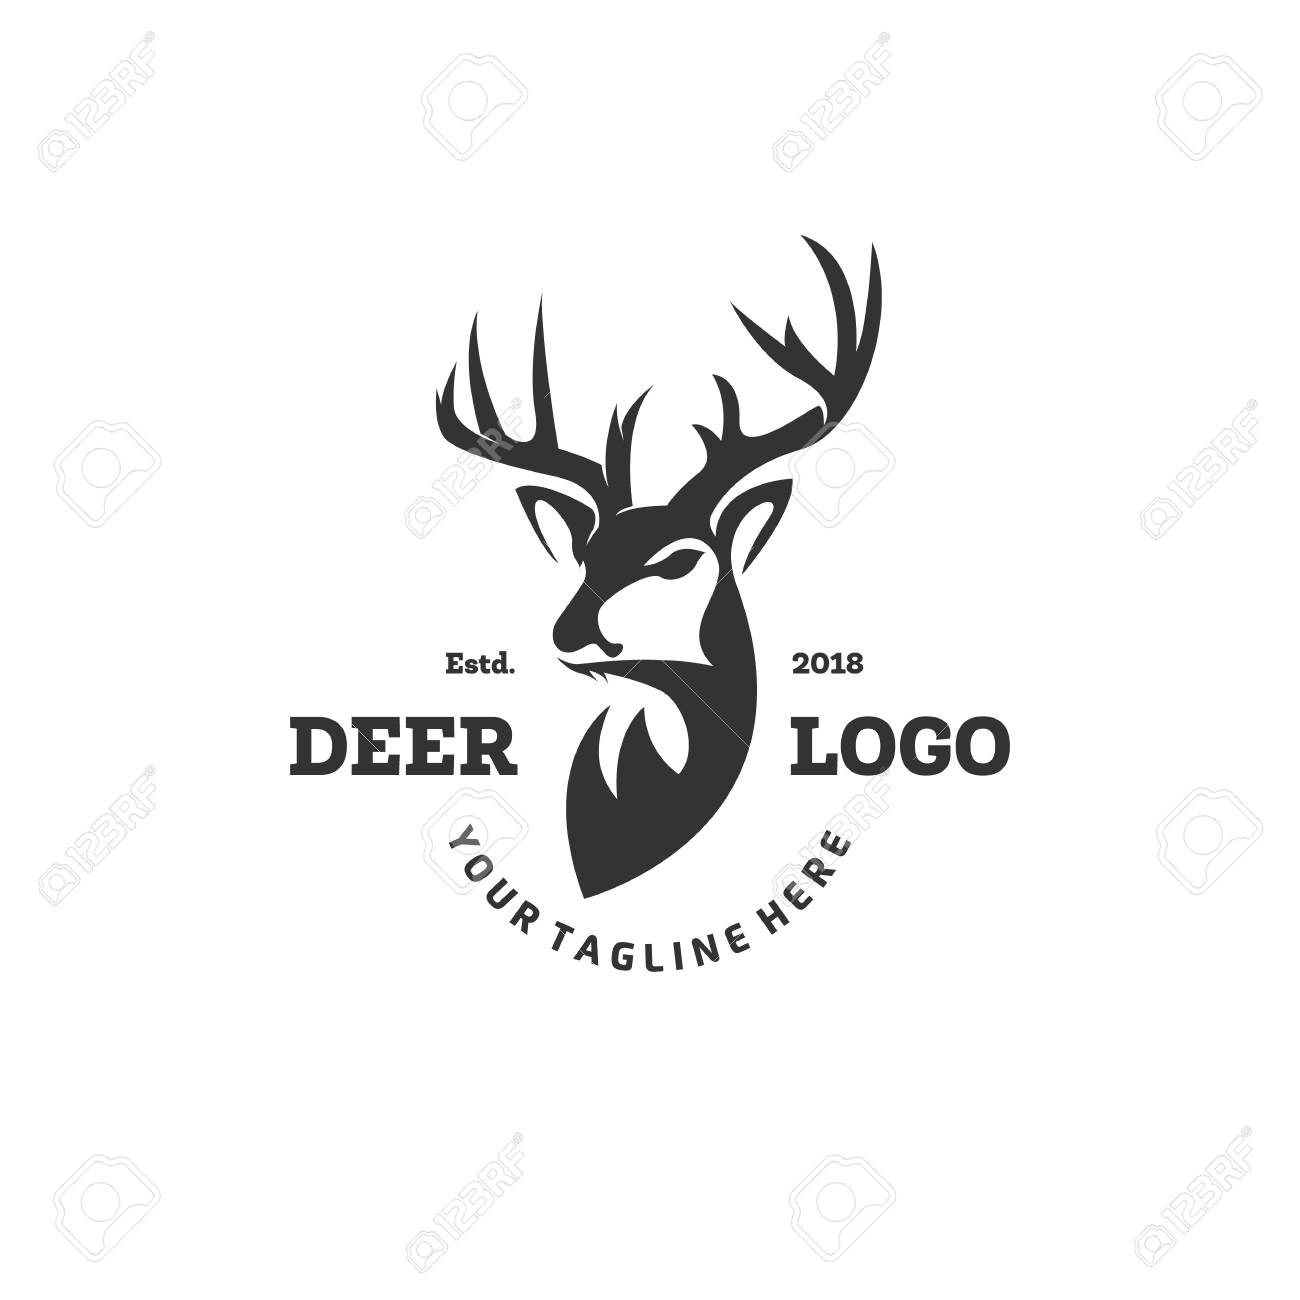 Hunting Club Logo Template. Deer Head and Horns Silhouette Isolated On White Background. Vector object for Labels, Badges, Logos and other Design. Deer Logo, Hunter Logo, Deer Hunting, Retro logo - 118504504